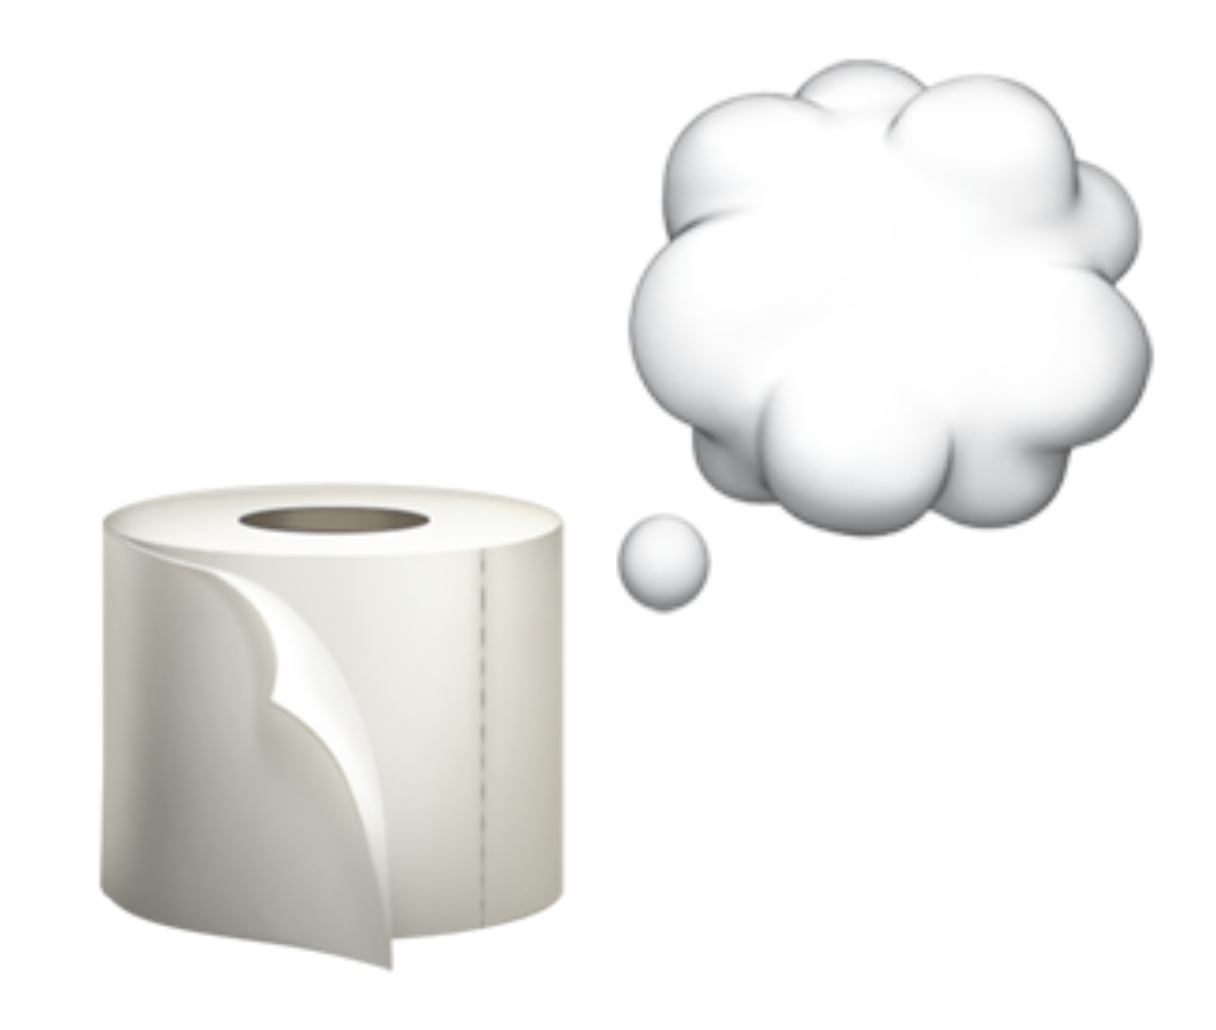 Toilet Paper and Pondering